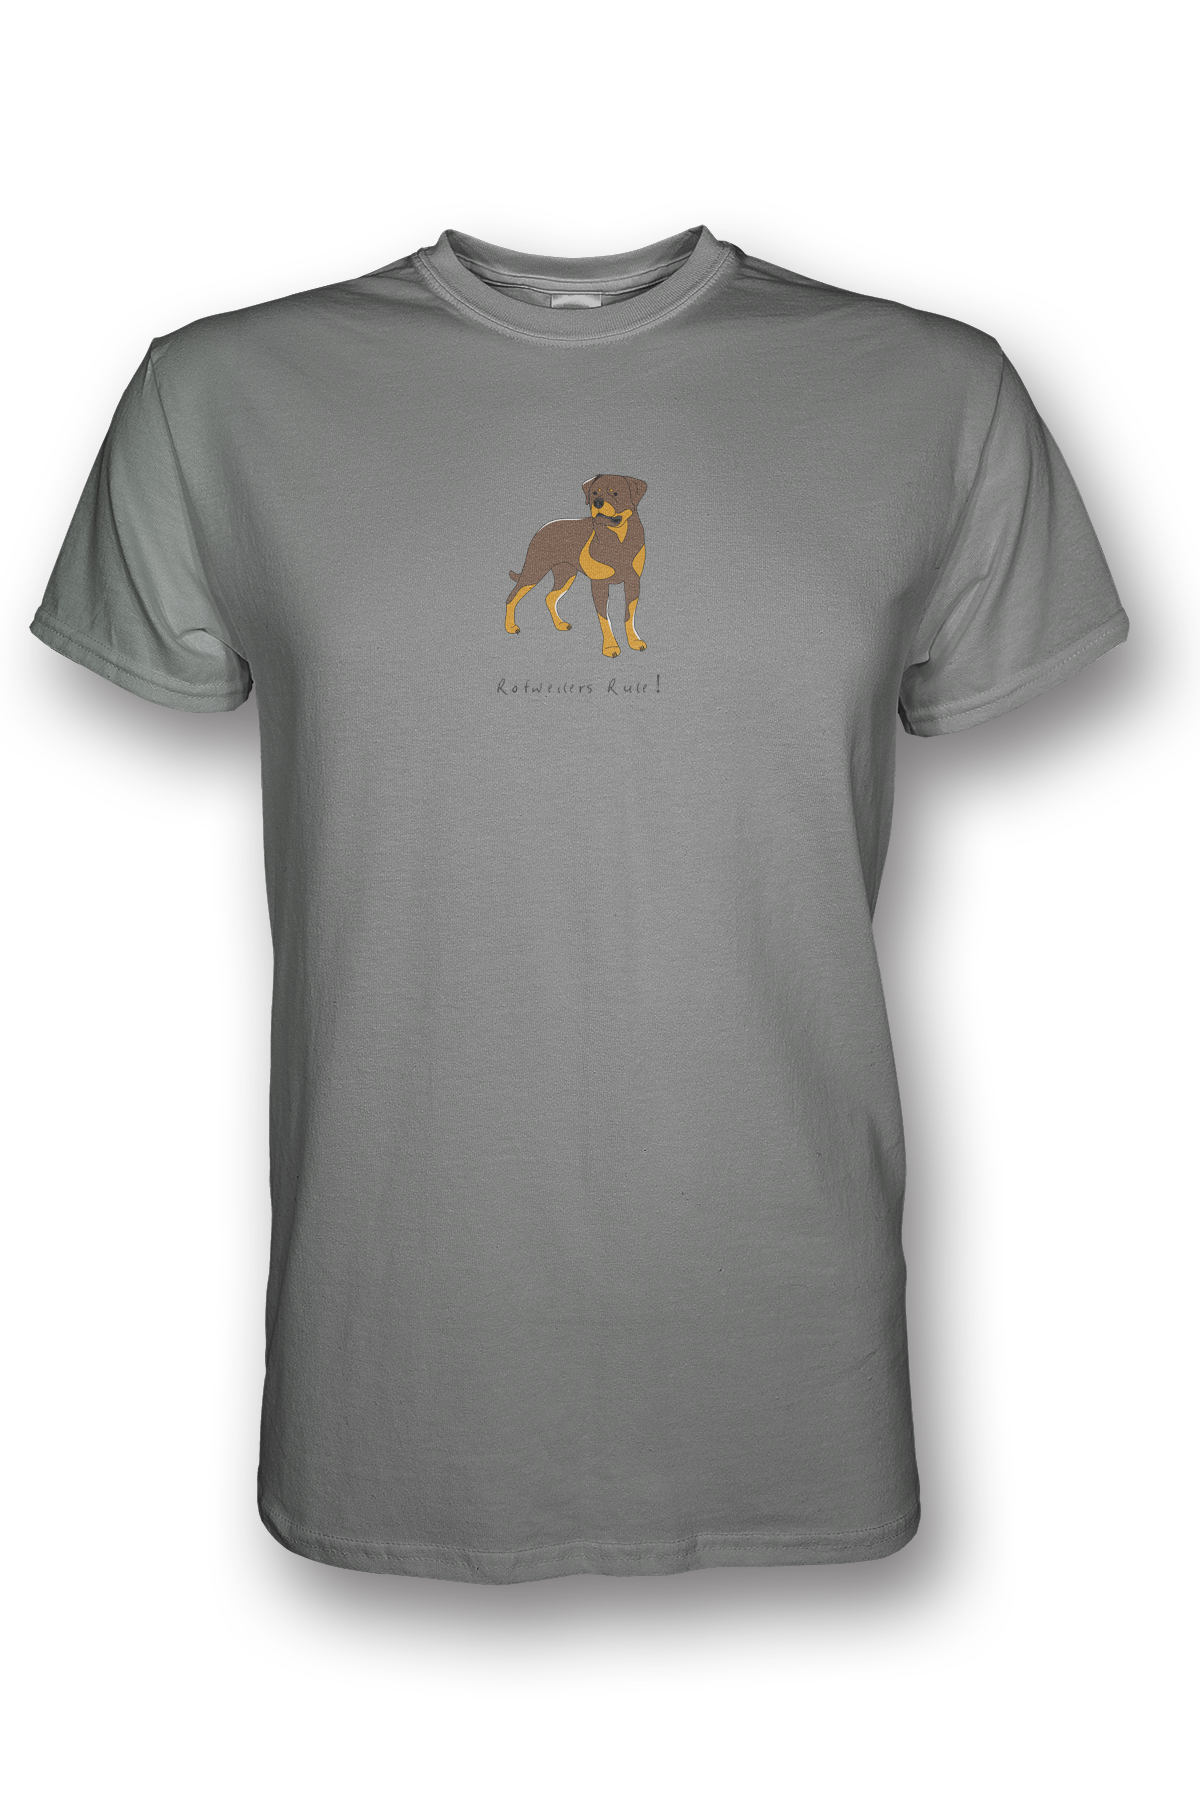 Mens Crew Neck T-Shirt - Rotweilers Rule! Heather Grey